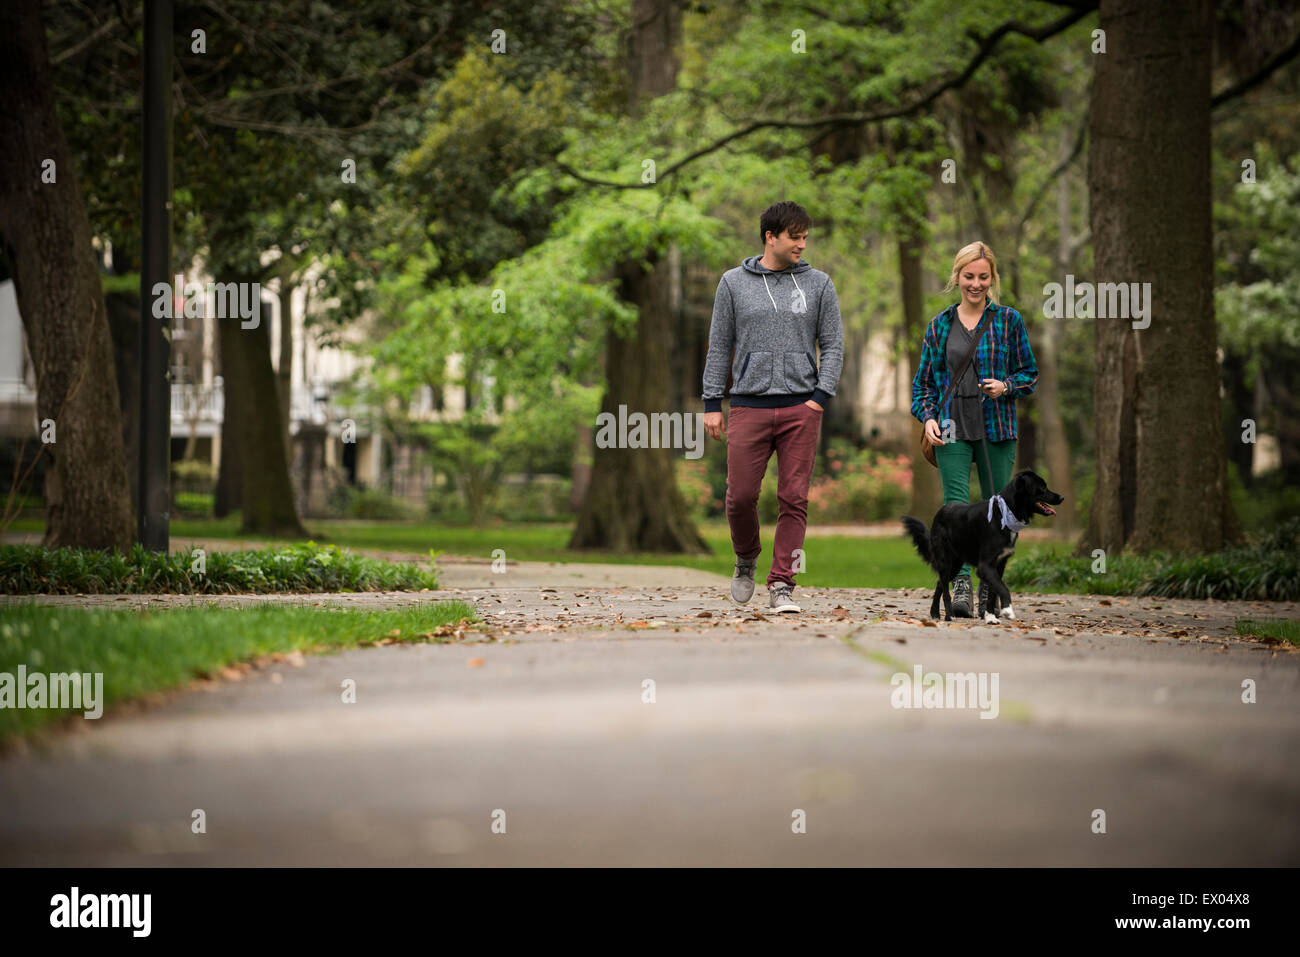 Couple walking dog in park, Savannah, Georgia, USA - Stock Image